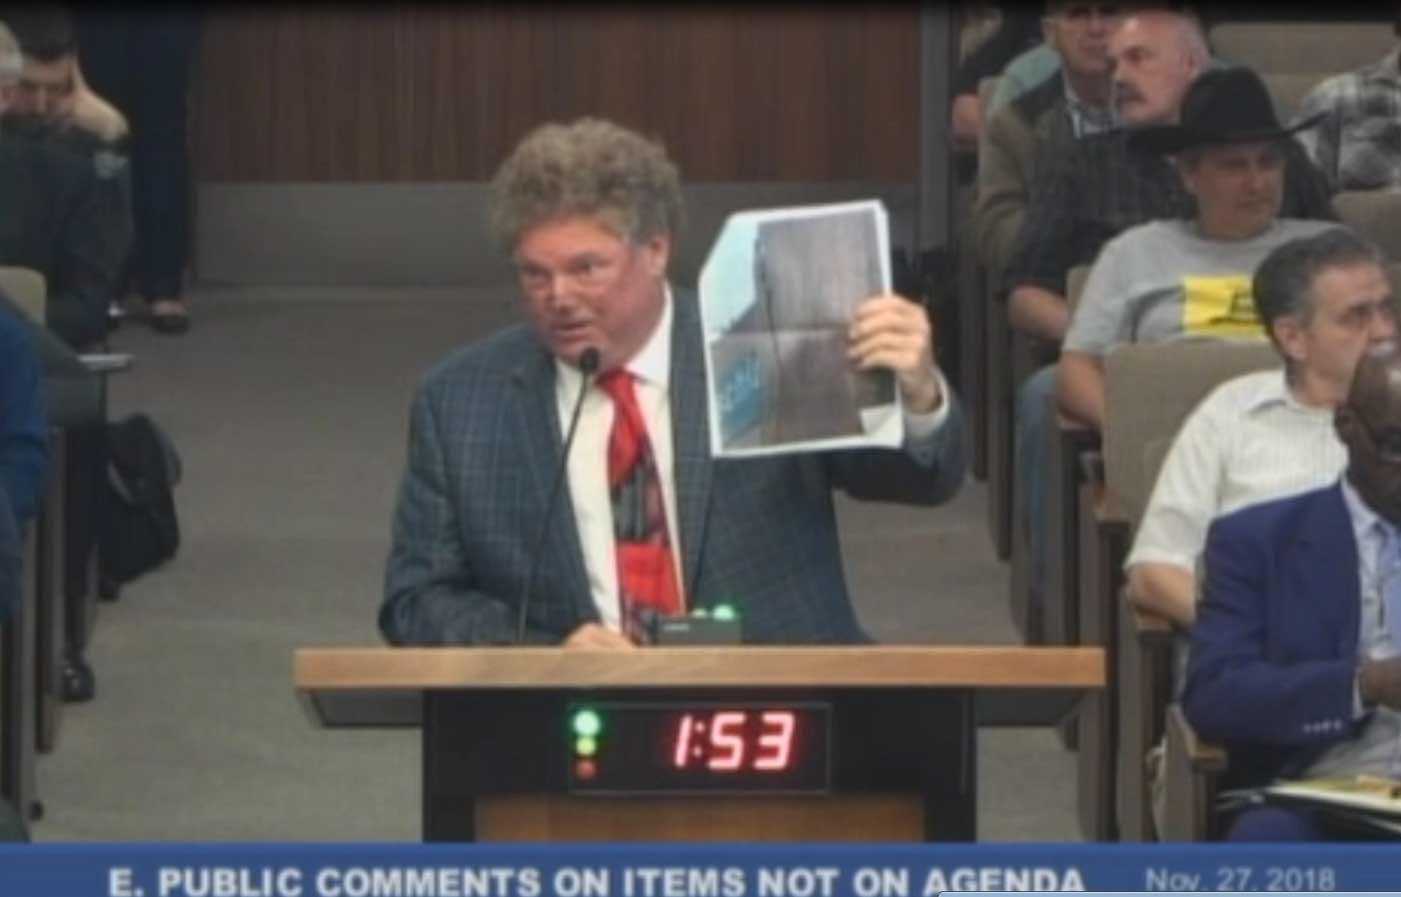 Tom Peterson presents letters and images to City Council